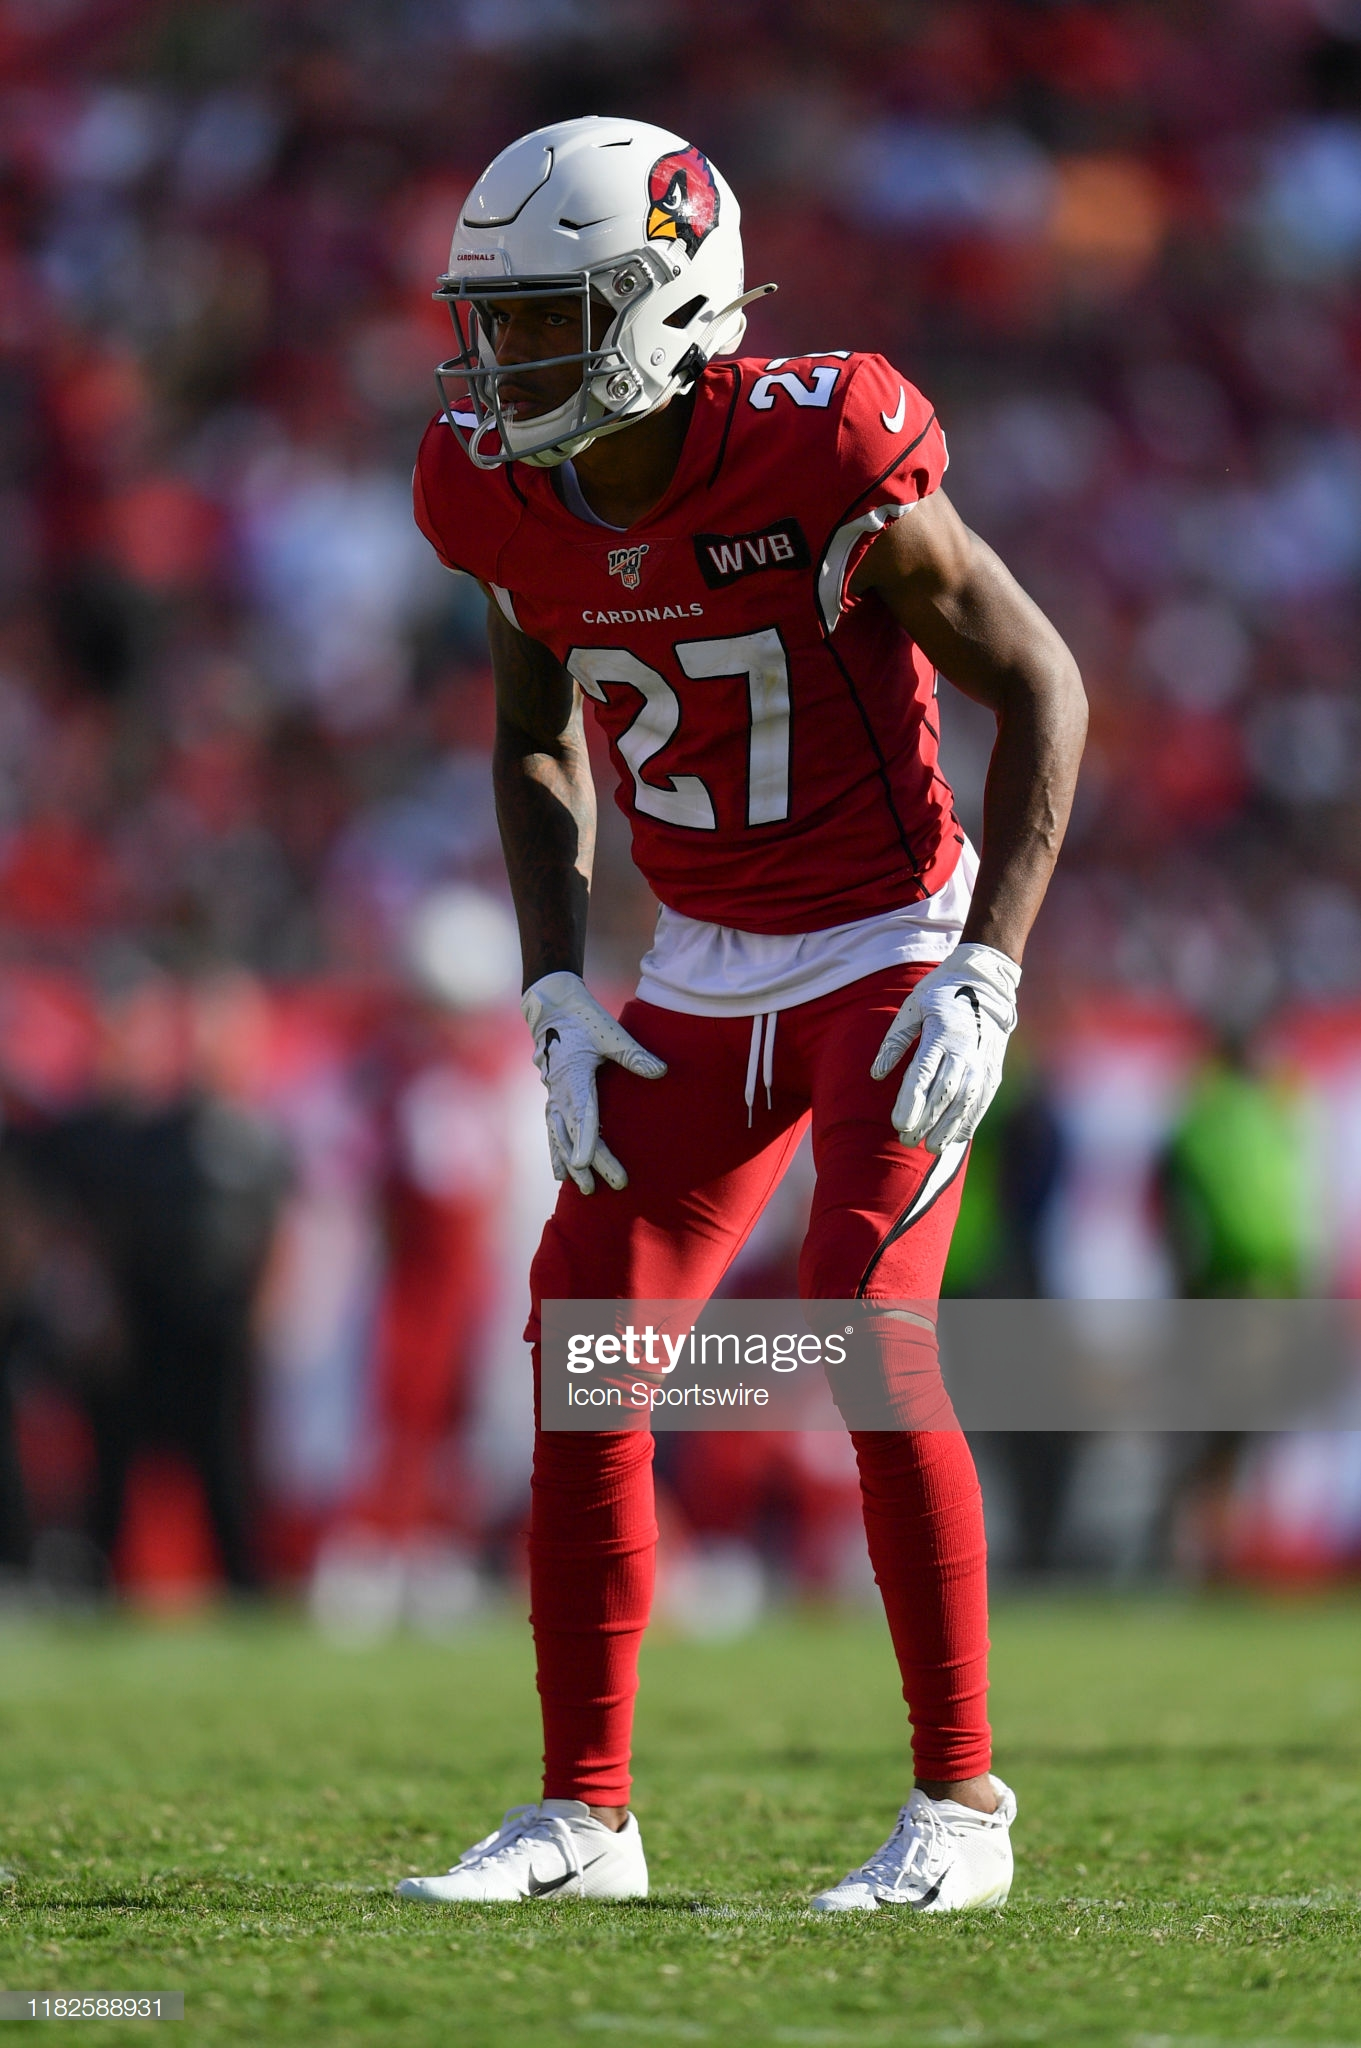 Nfl Games 2020.Breaking Nfl Suspends Player Through 2020 For Gambling On